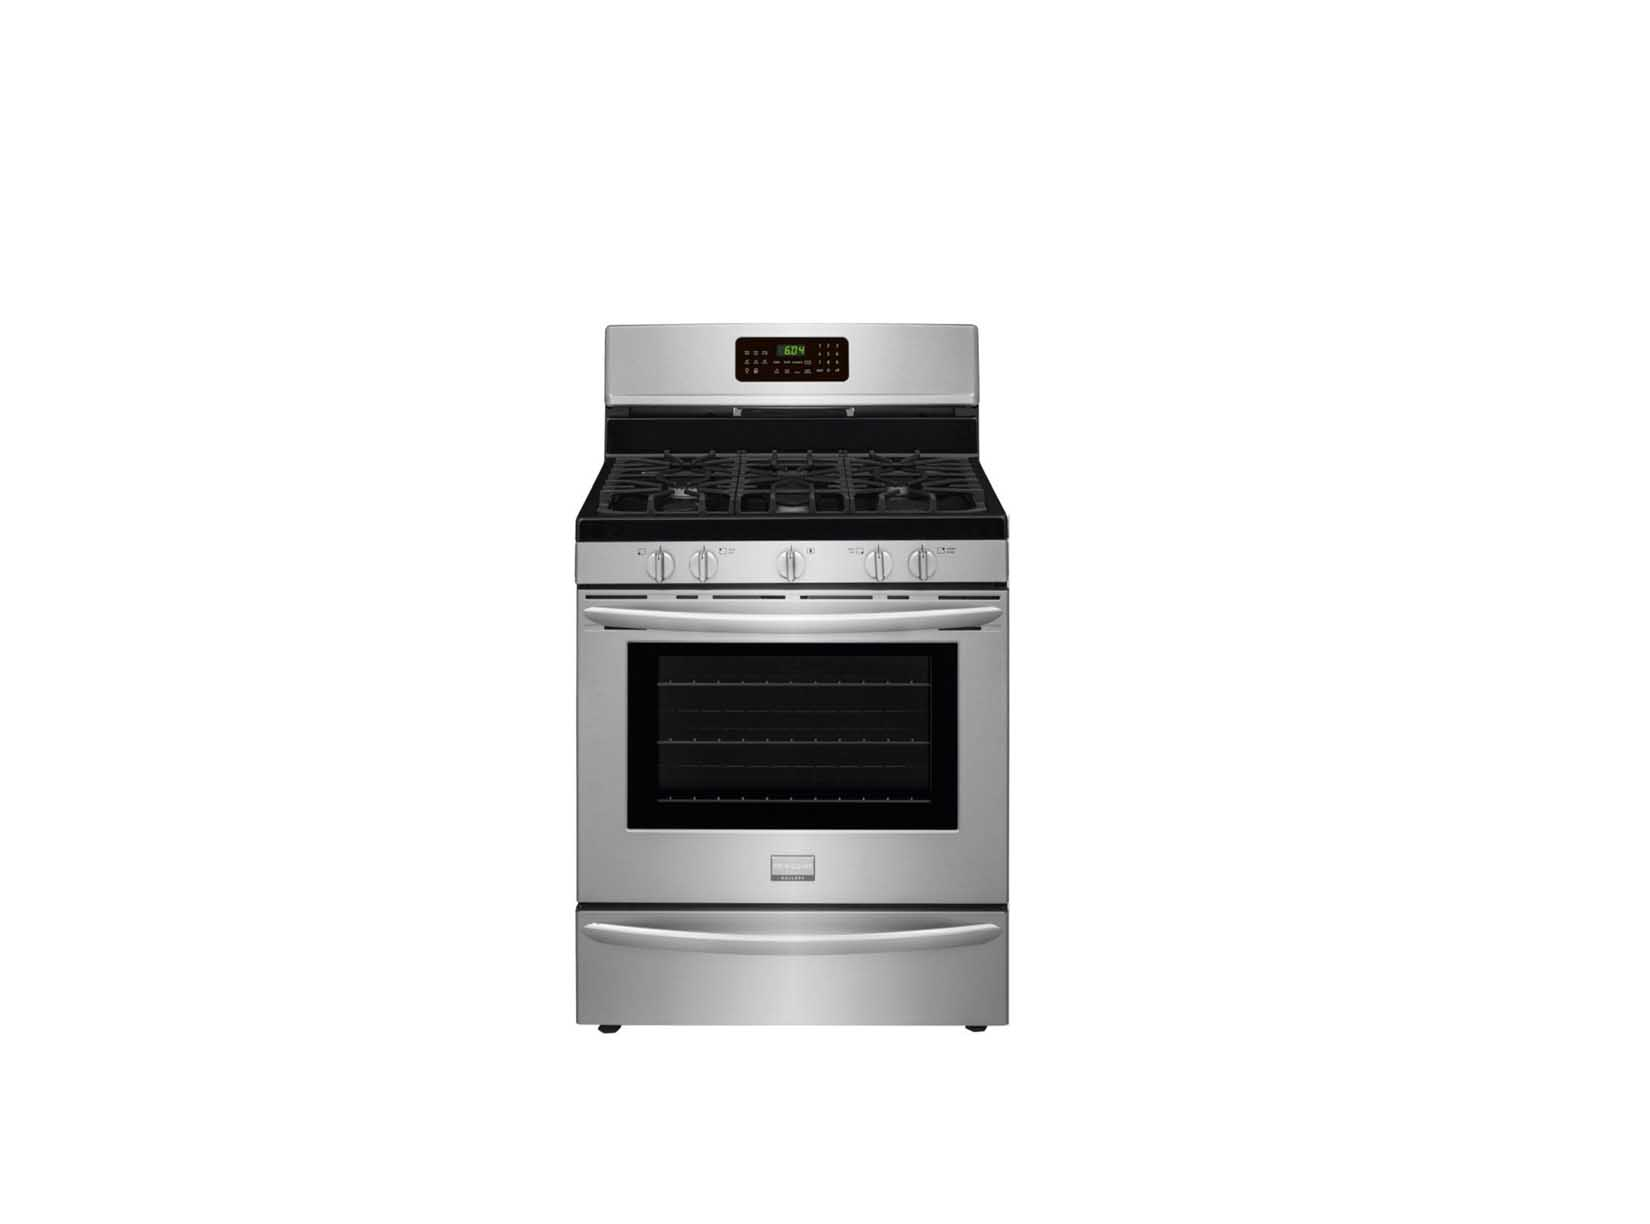 frigidaire gallery 5 cu ft gas range with convection stainless steel - Frigidaire Gallery Gas Range